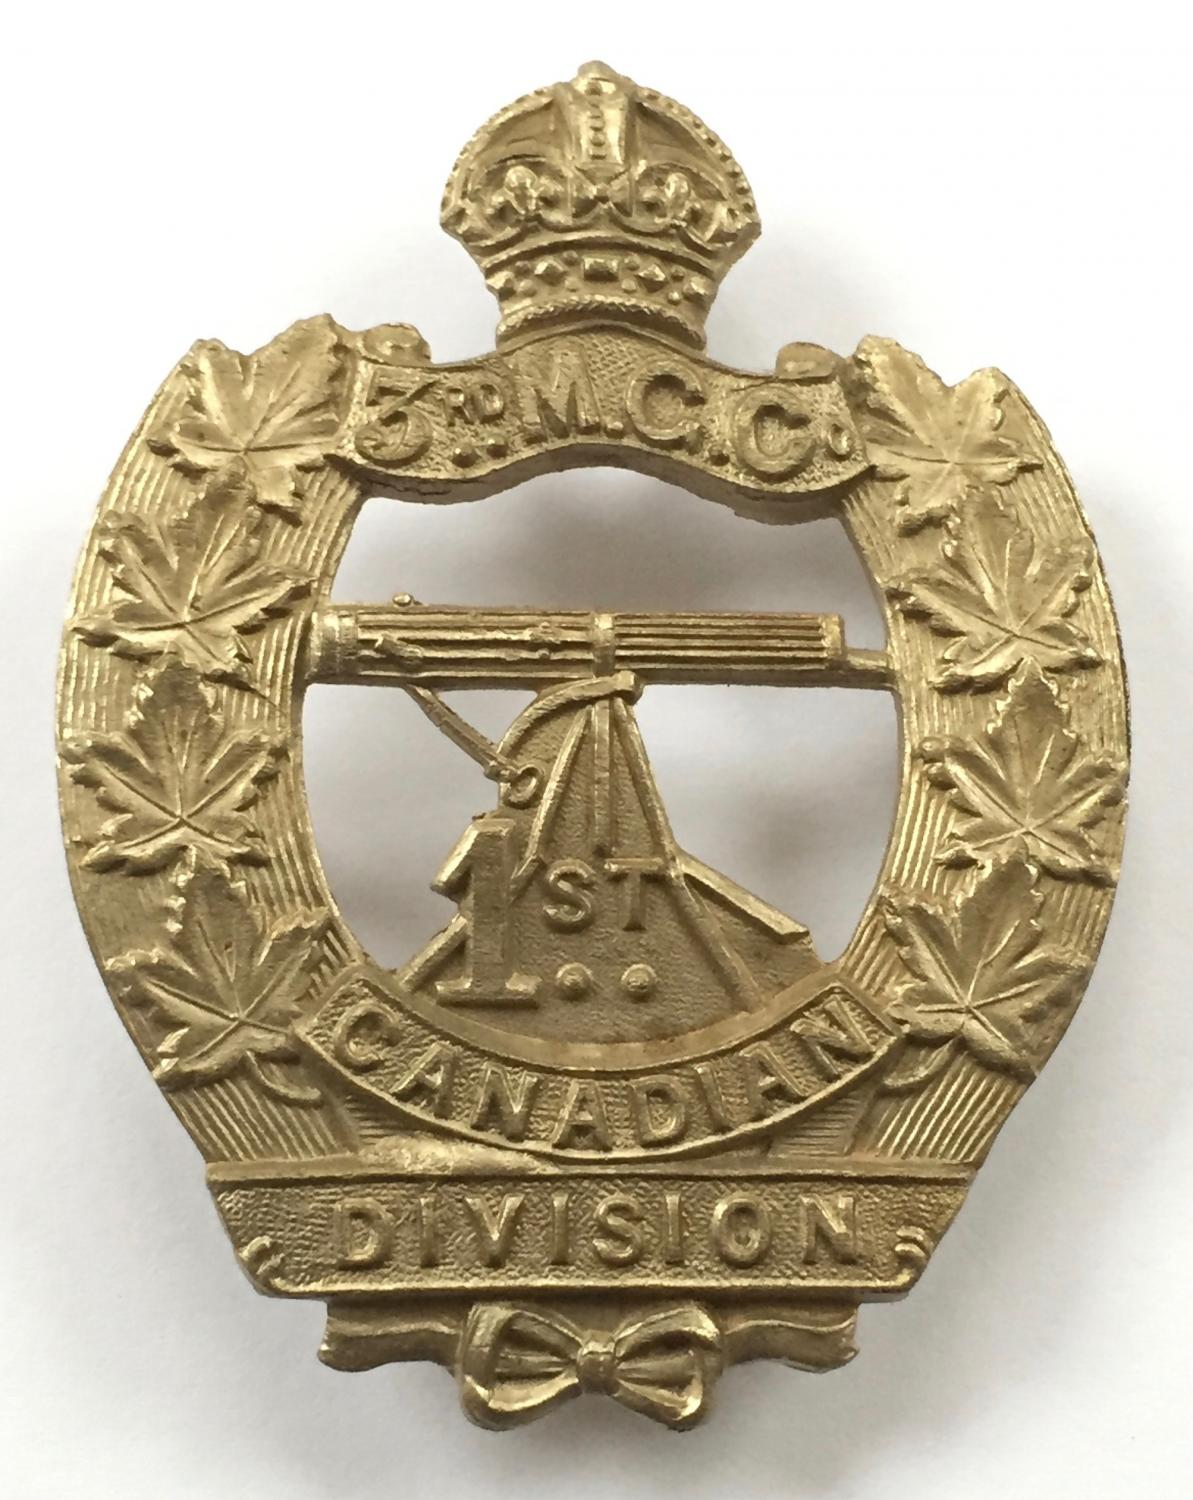 3rd MG Co 1st Canadian Div CEF cap badge